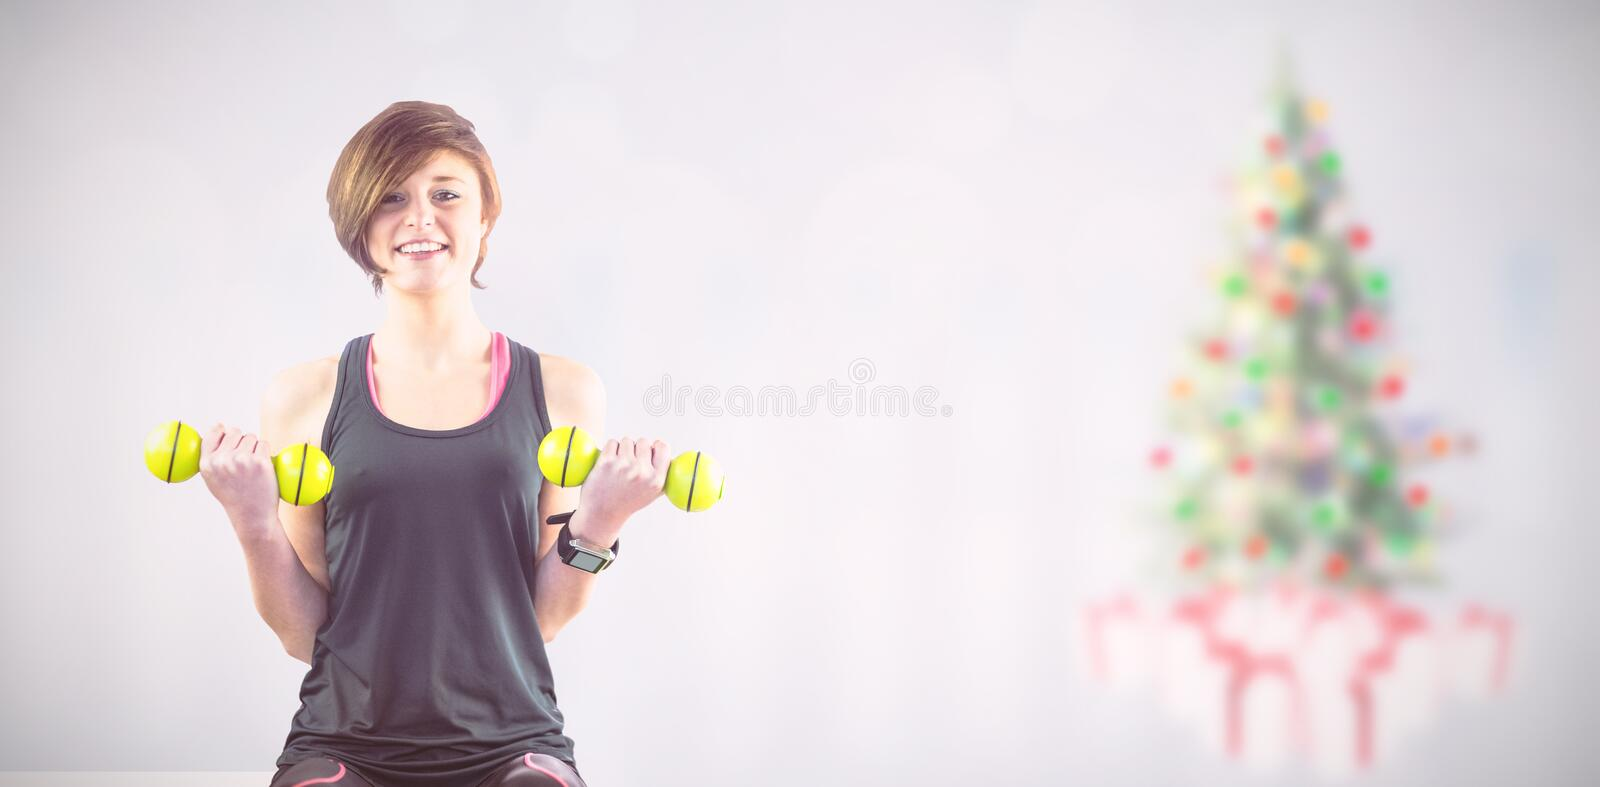 Composite image of sporty woman smiling while lifting dumbbells royalty free stock photo